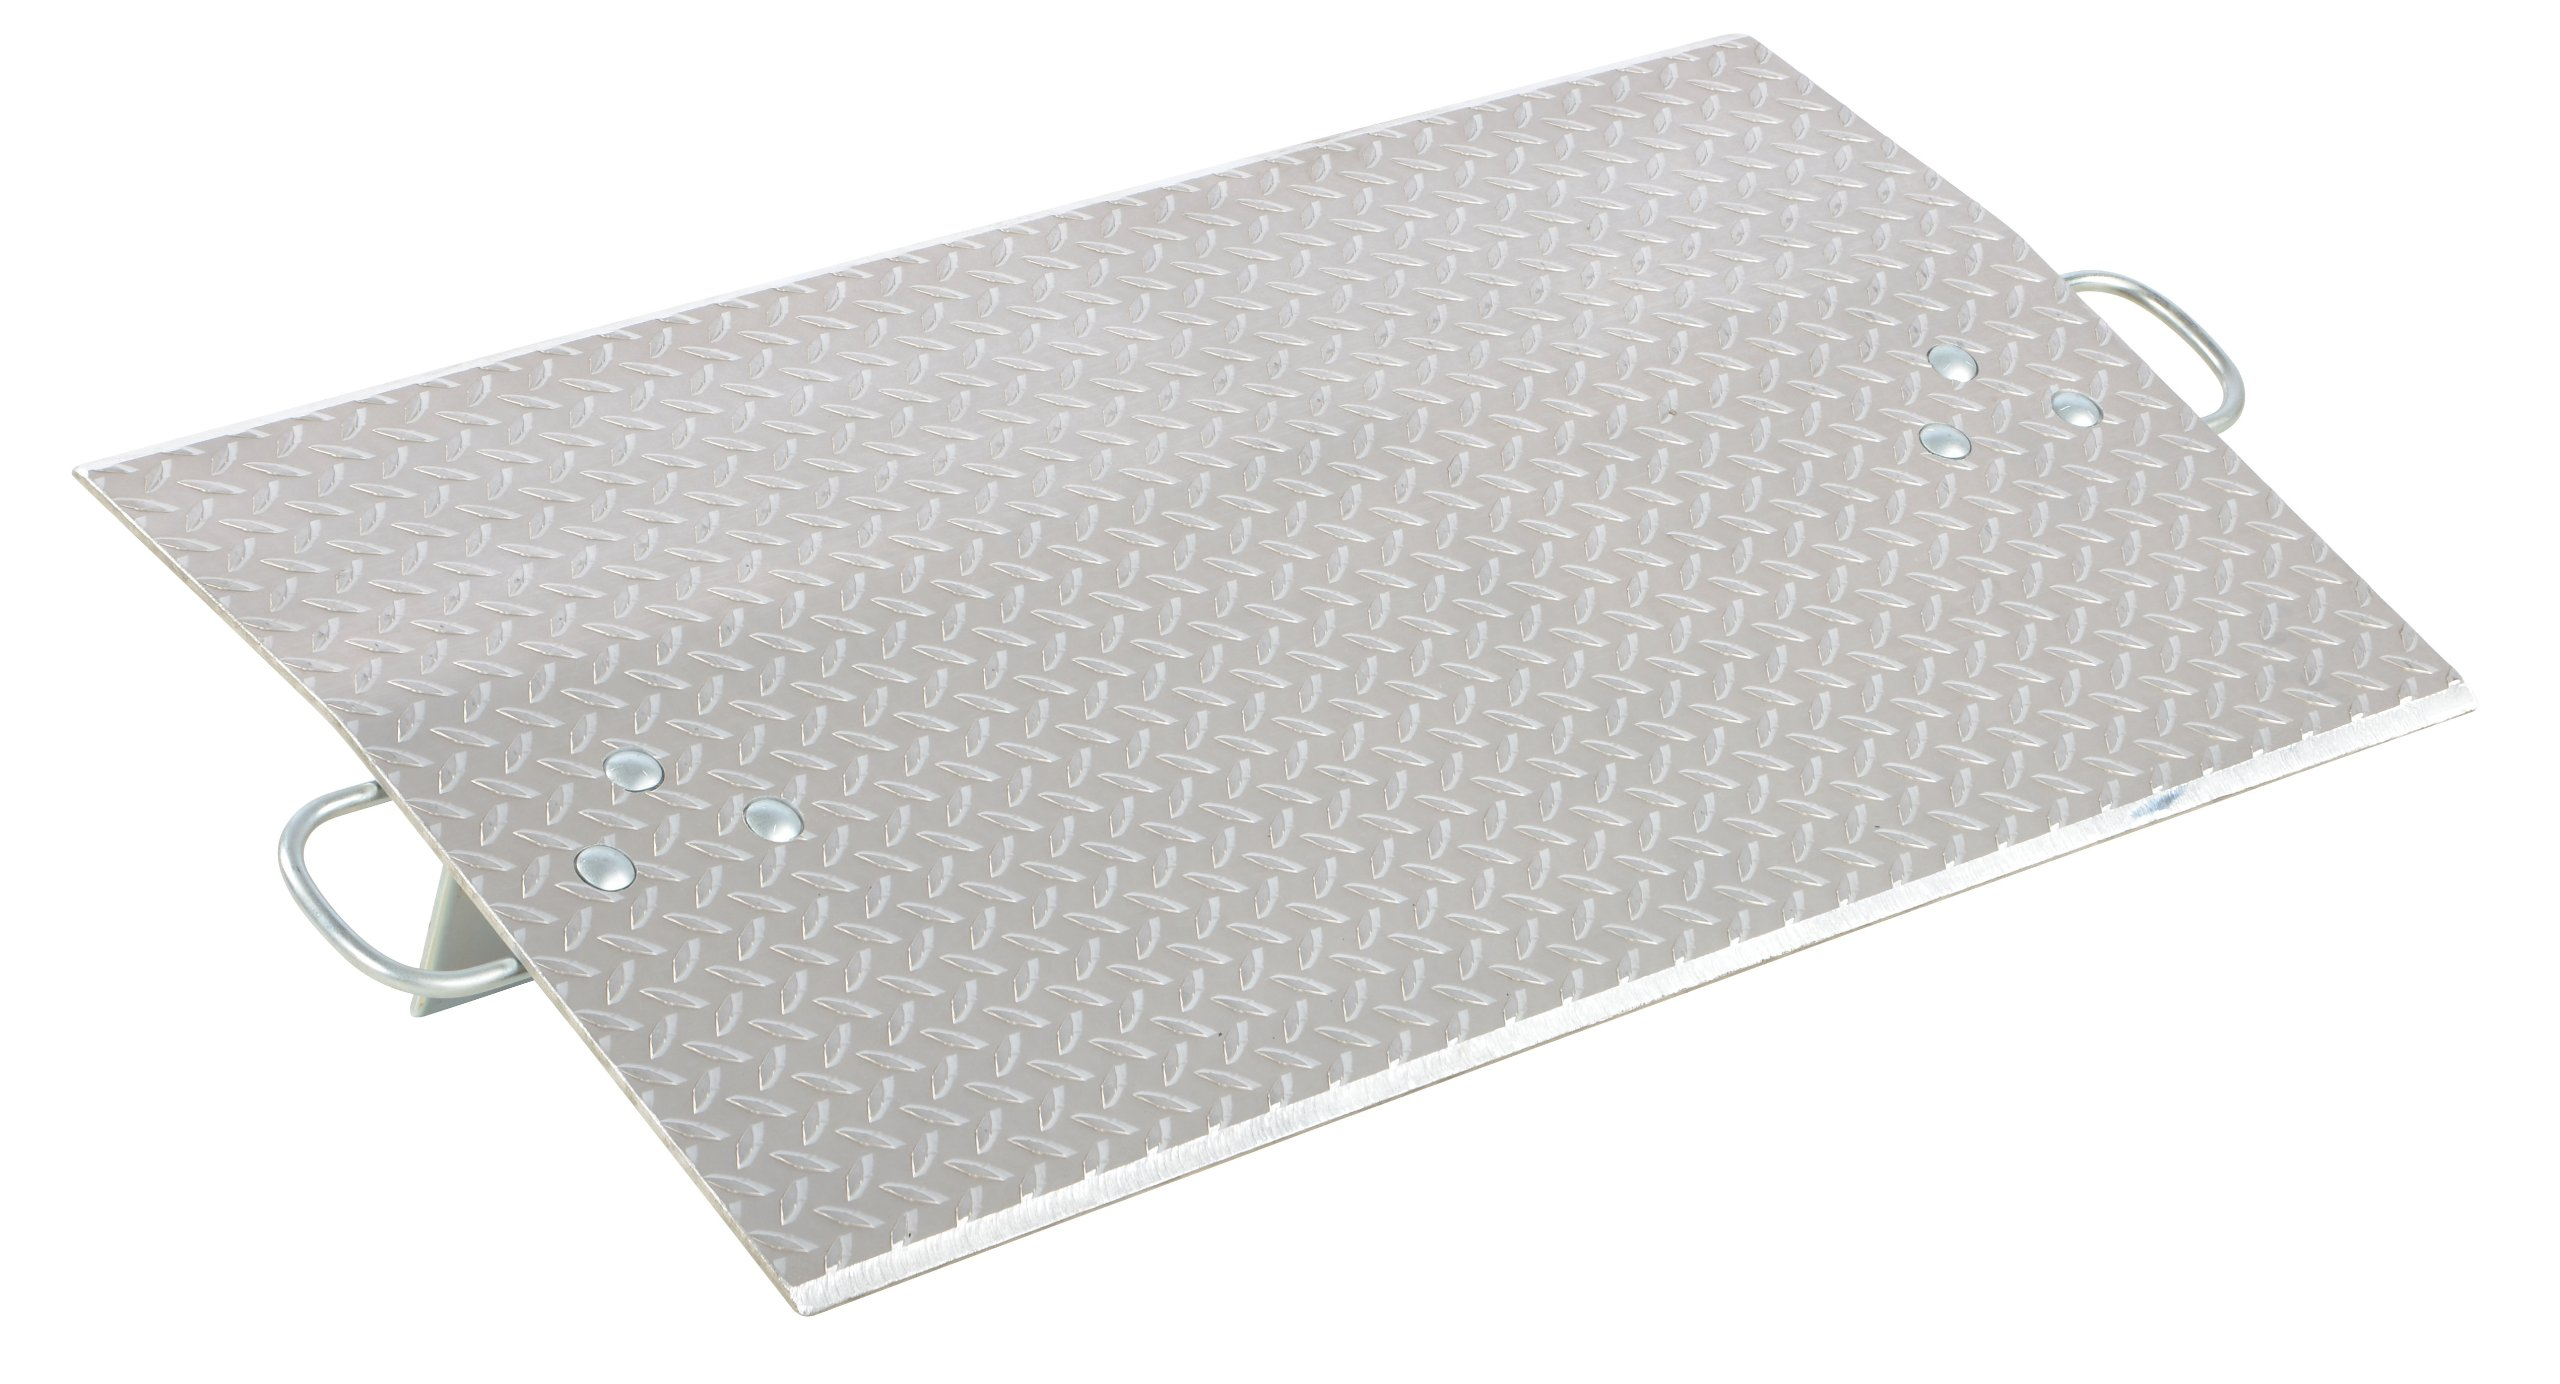 Vestil E-3624 Aluminum Economizer Dock Plate, 3,600-lb. Capacity, 24'' Length, 36'' Usable Width, 3'' Height Difference, 3/8'' Plate Thickness